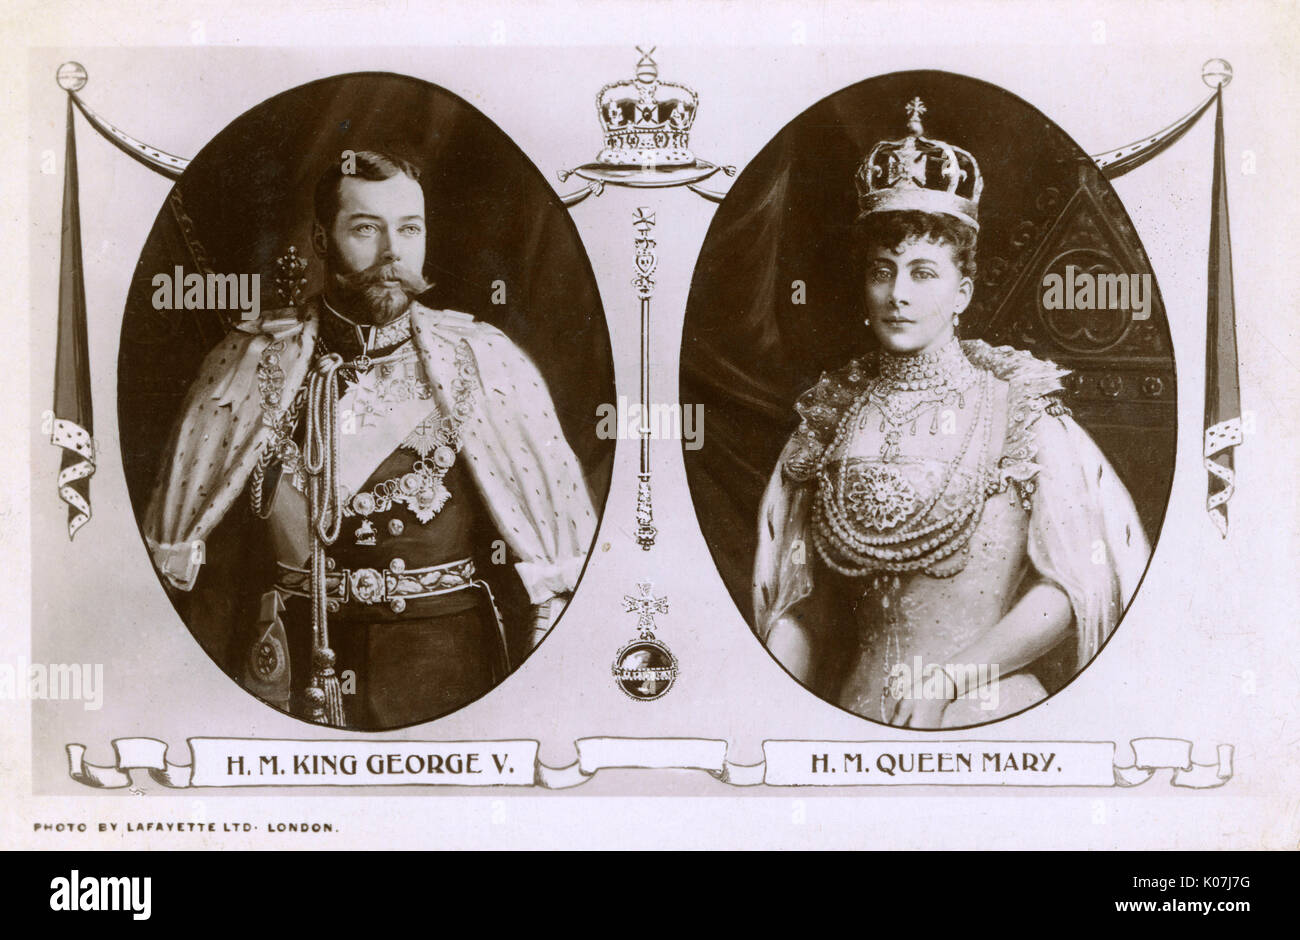 king george dating Southern unionists appeal to king george v | the century ireland project is an  online historical newspaper that  a resolution, dated 17 april 1914, from the co.